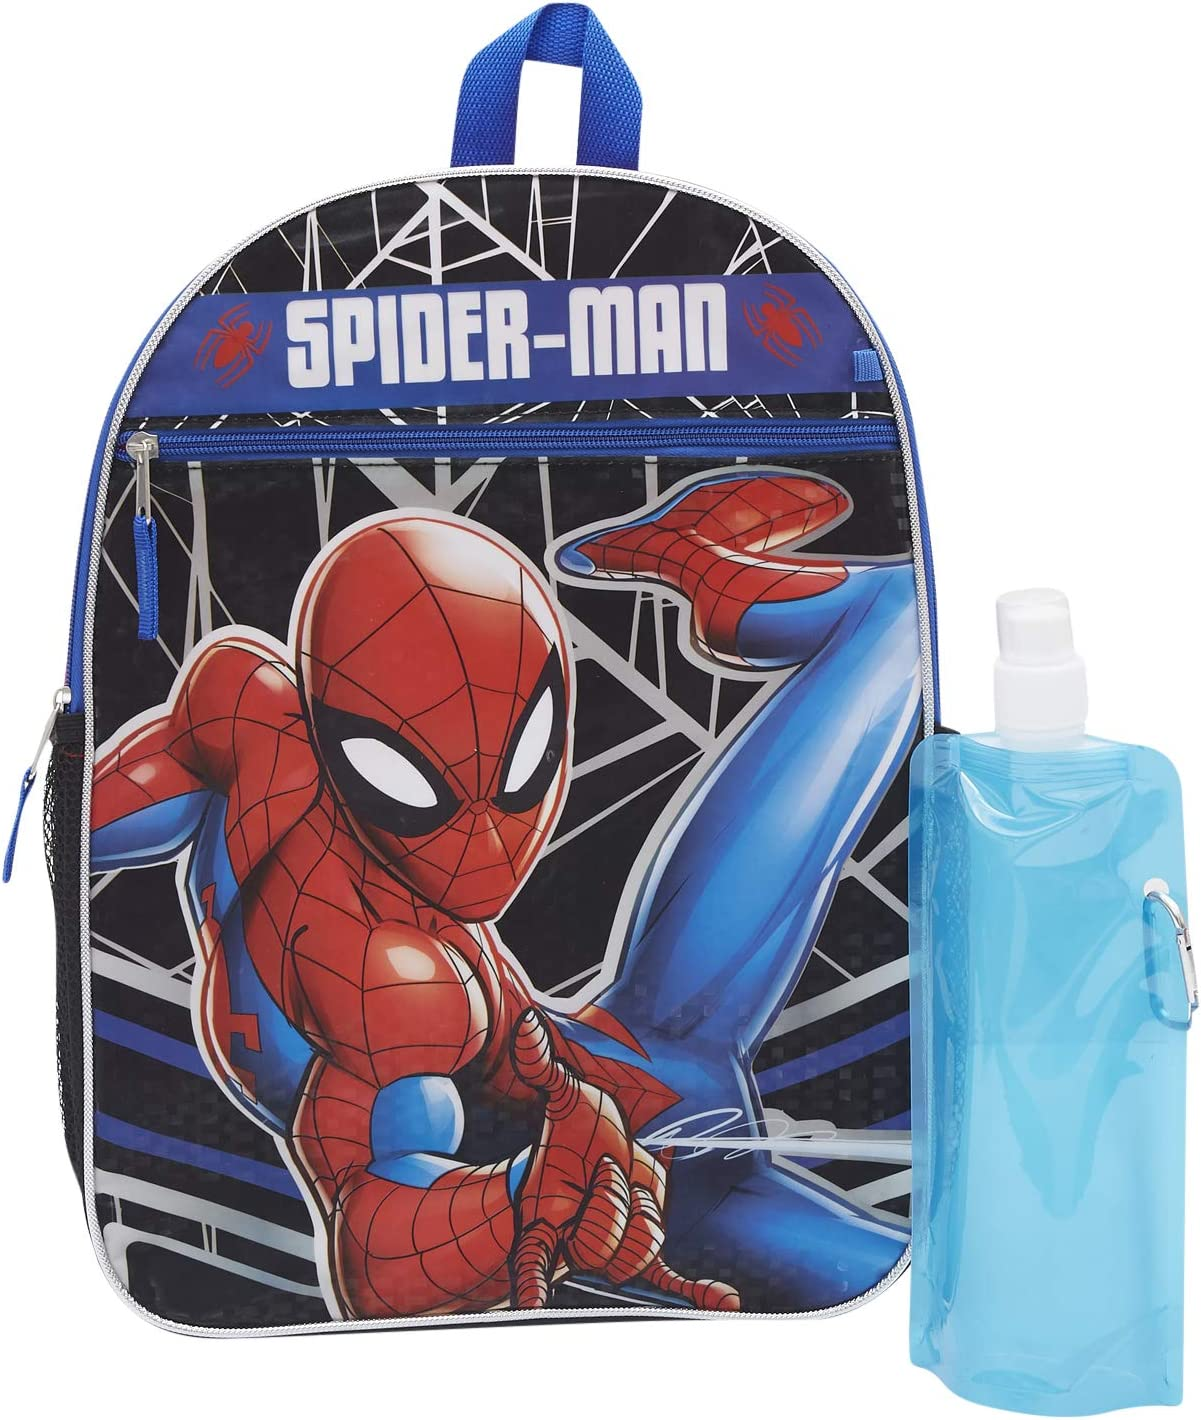 Marvel Spiderman Backpack Combo Set - Spiderman Boys 3 Piece Backpack Set - Backpack, Water Bottle and Carabina (spiderman)